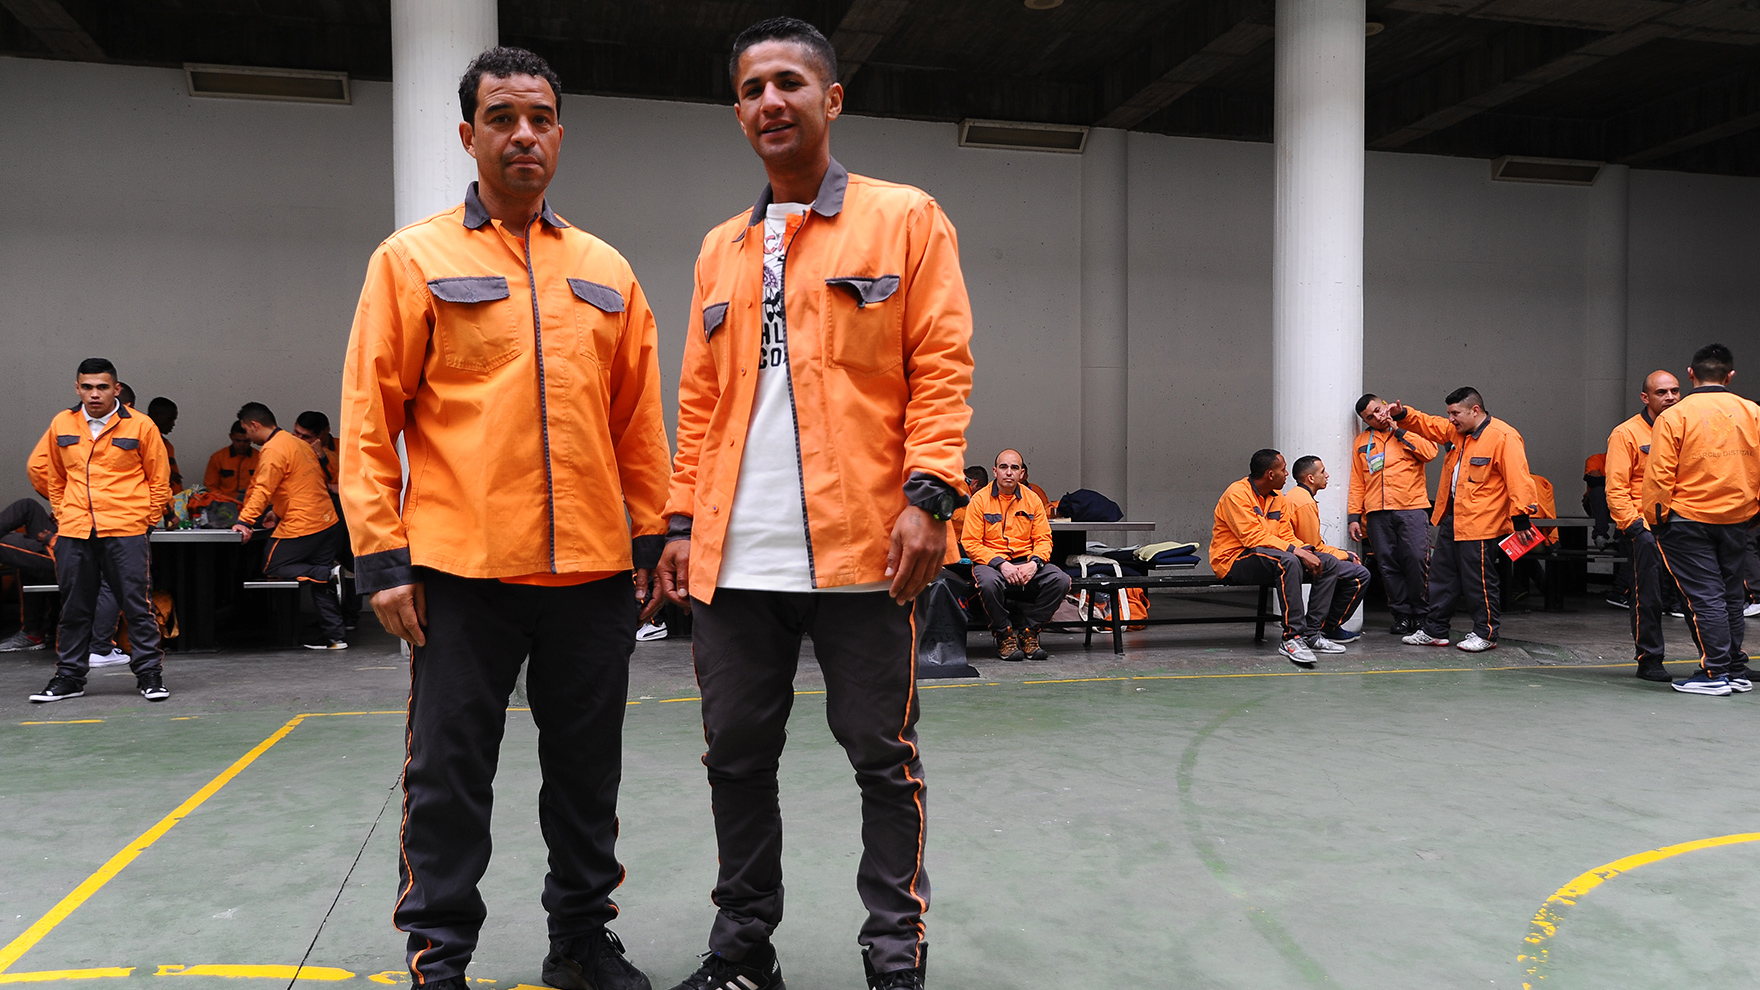 Copy-of-RR-in-Colombian-Prison-with-Prisoner1